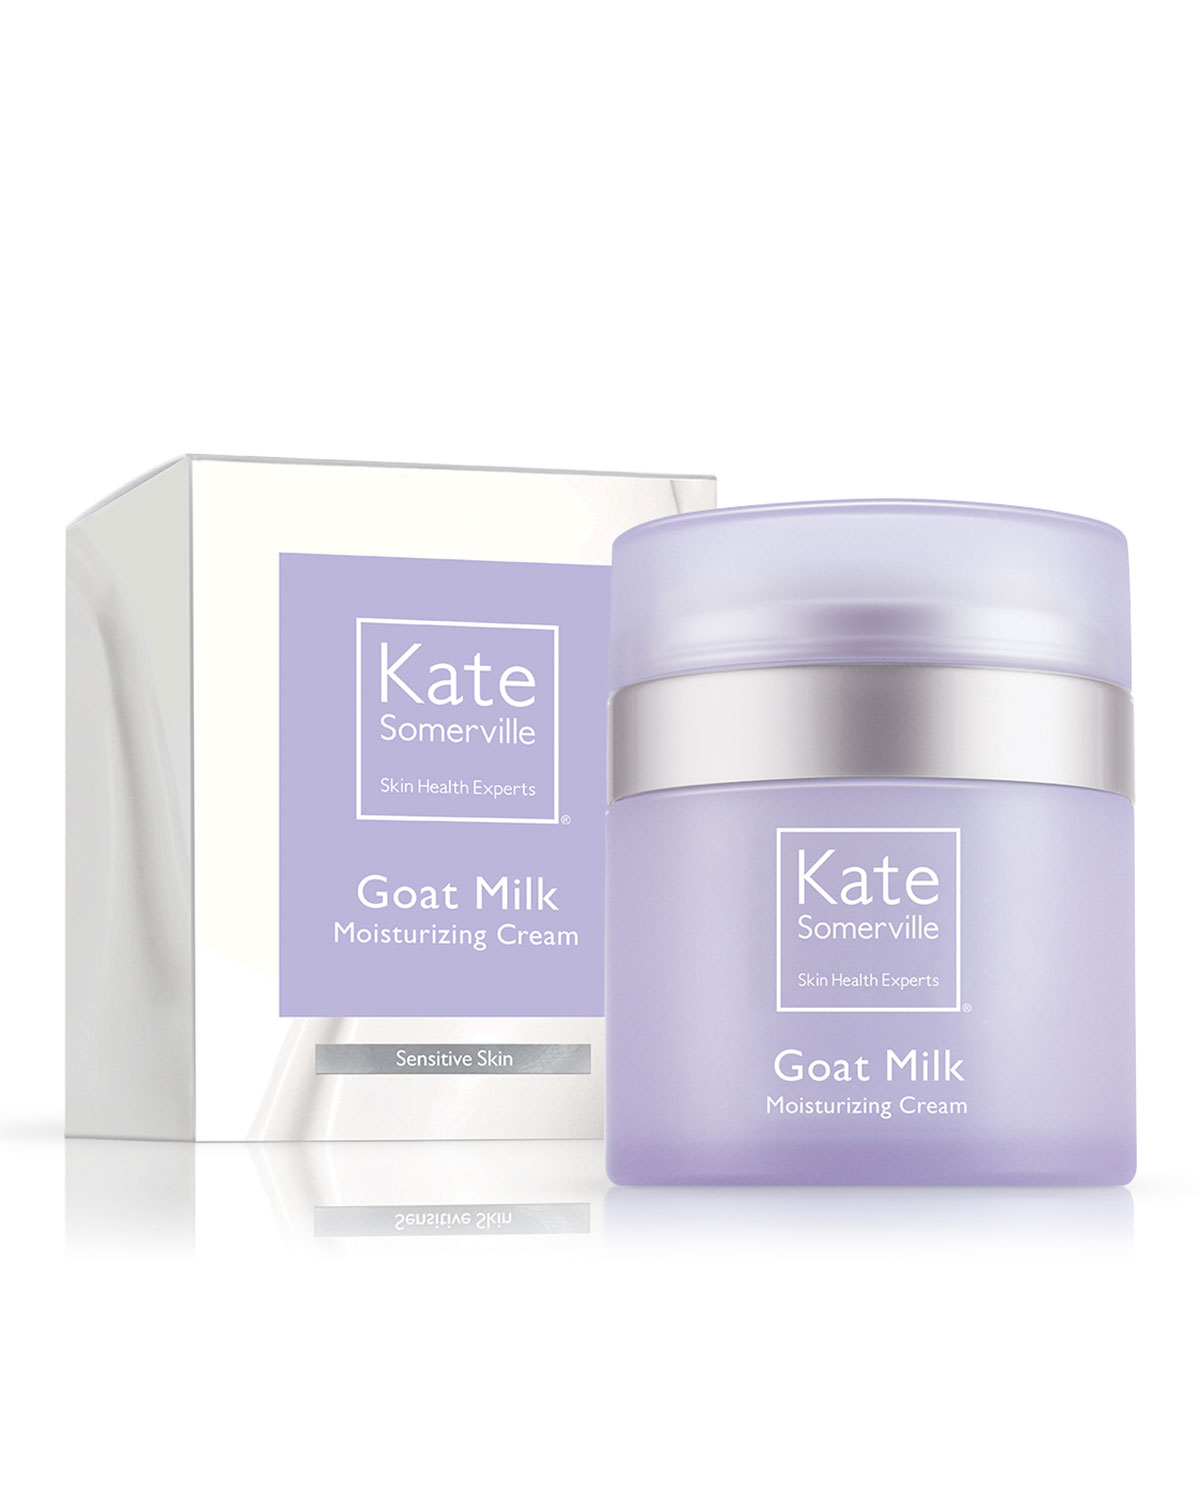 Kate Somerville Goat Milk Moisturizing Cream 1 7 Oz Neiman Marcus